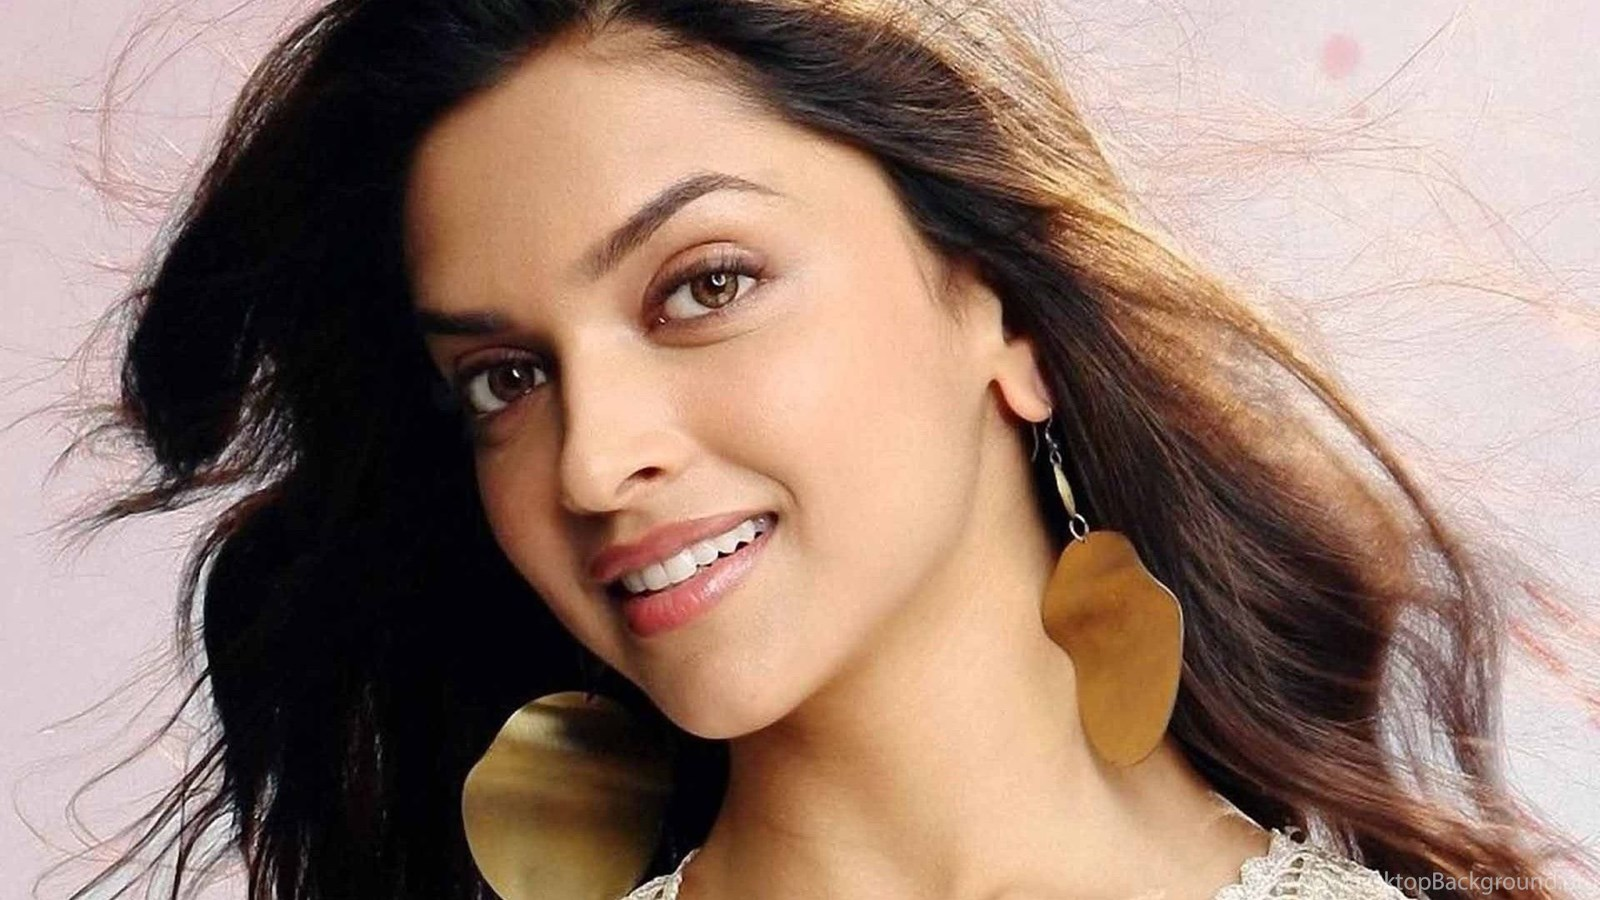 Beautiful Face Deepika Padukone Nice Hd Wallpapers Free Download